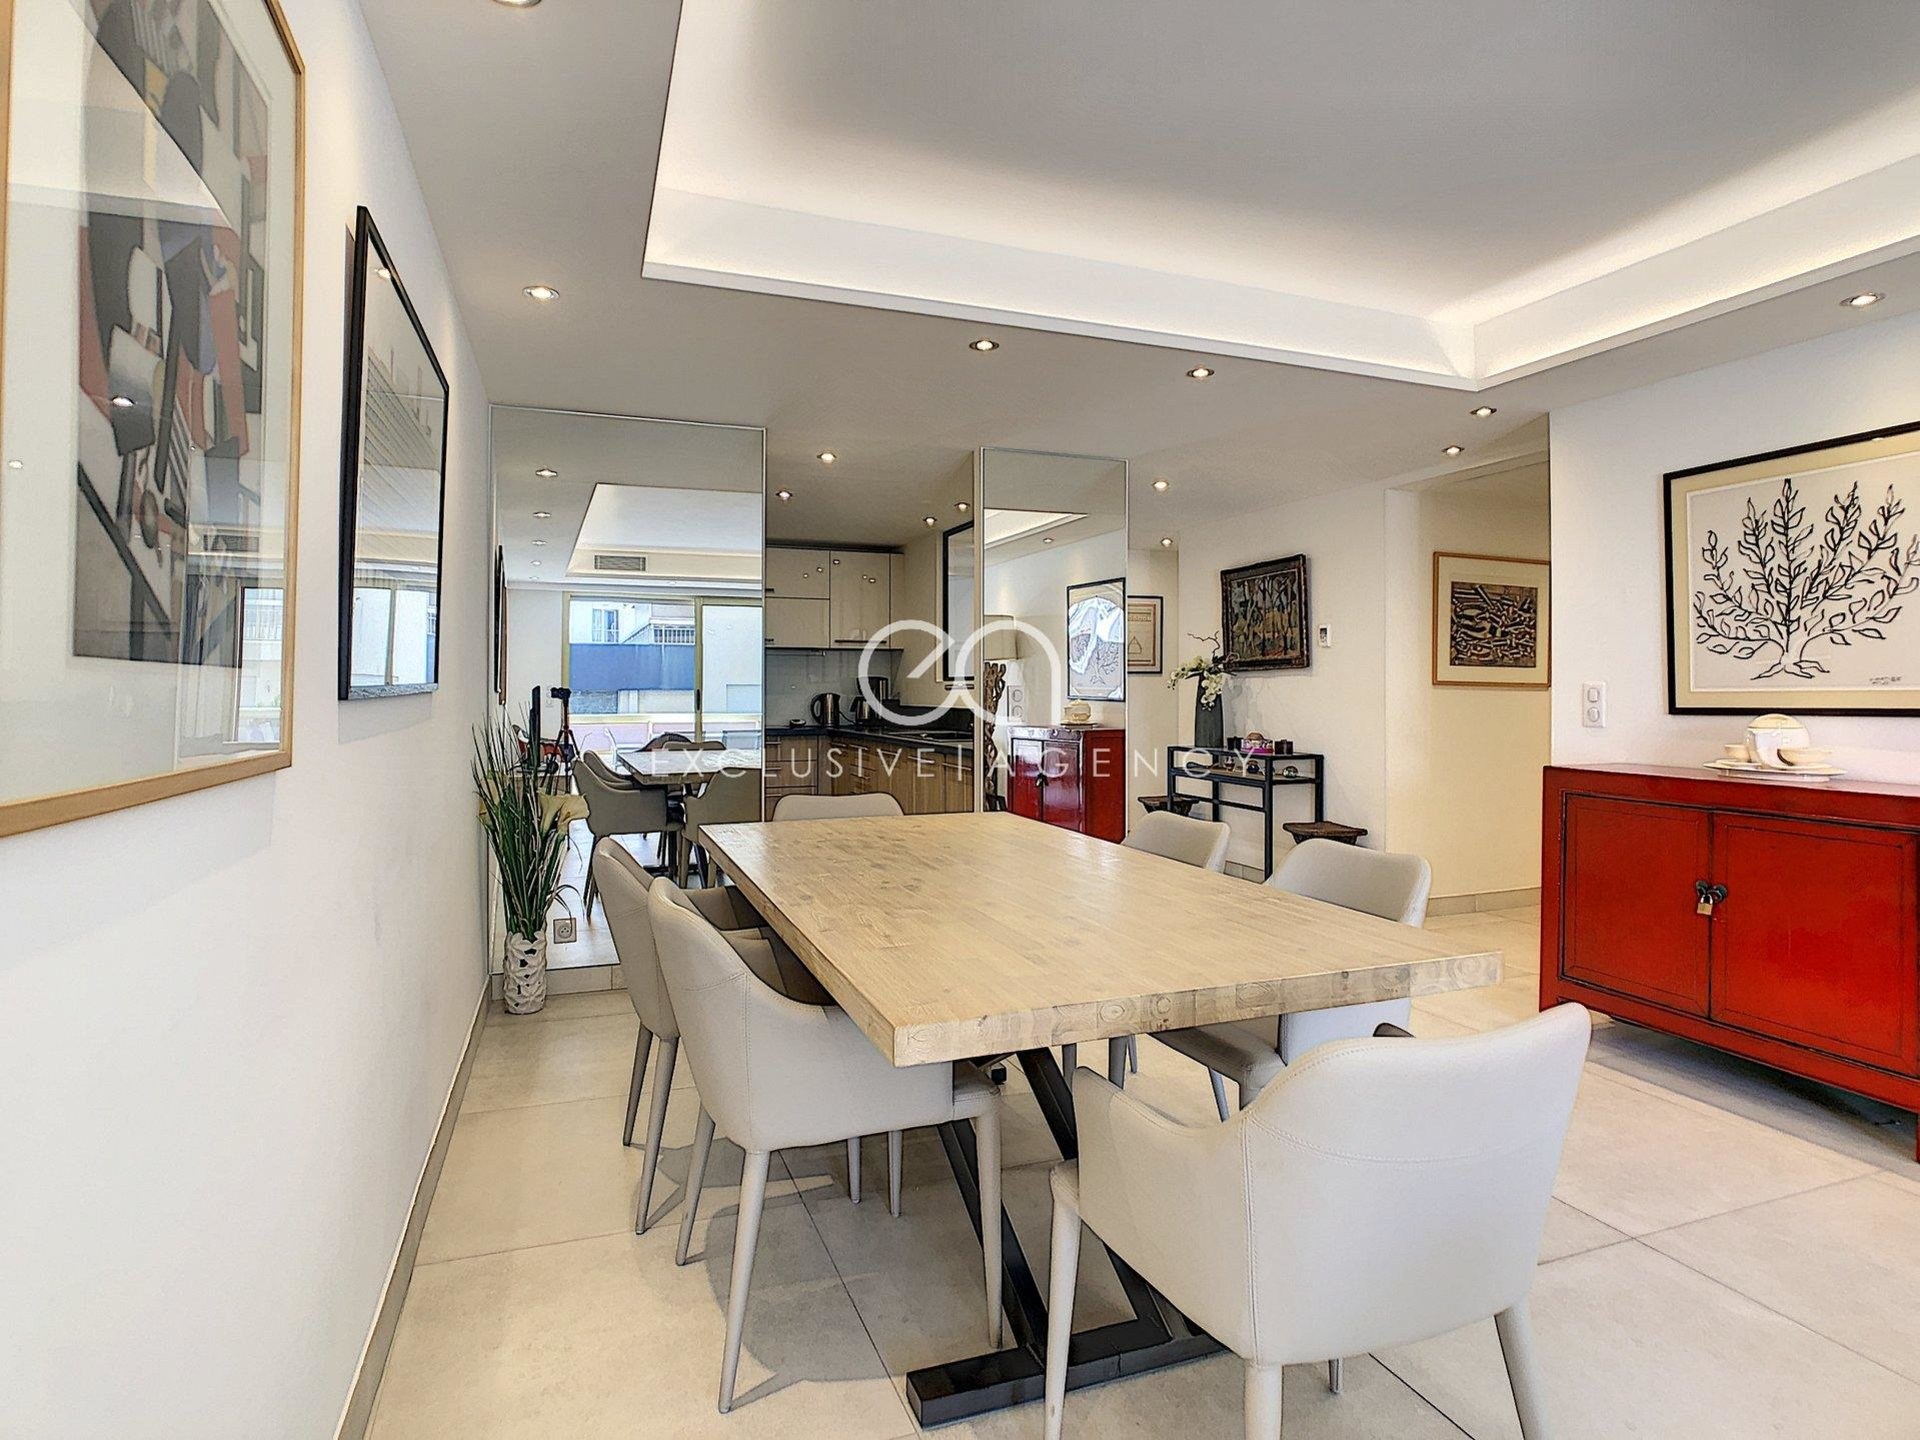 Cannes 100m Croisette - 2 bedrooms 100sqm - brand new - parking and cellar